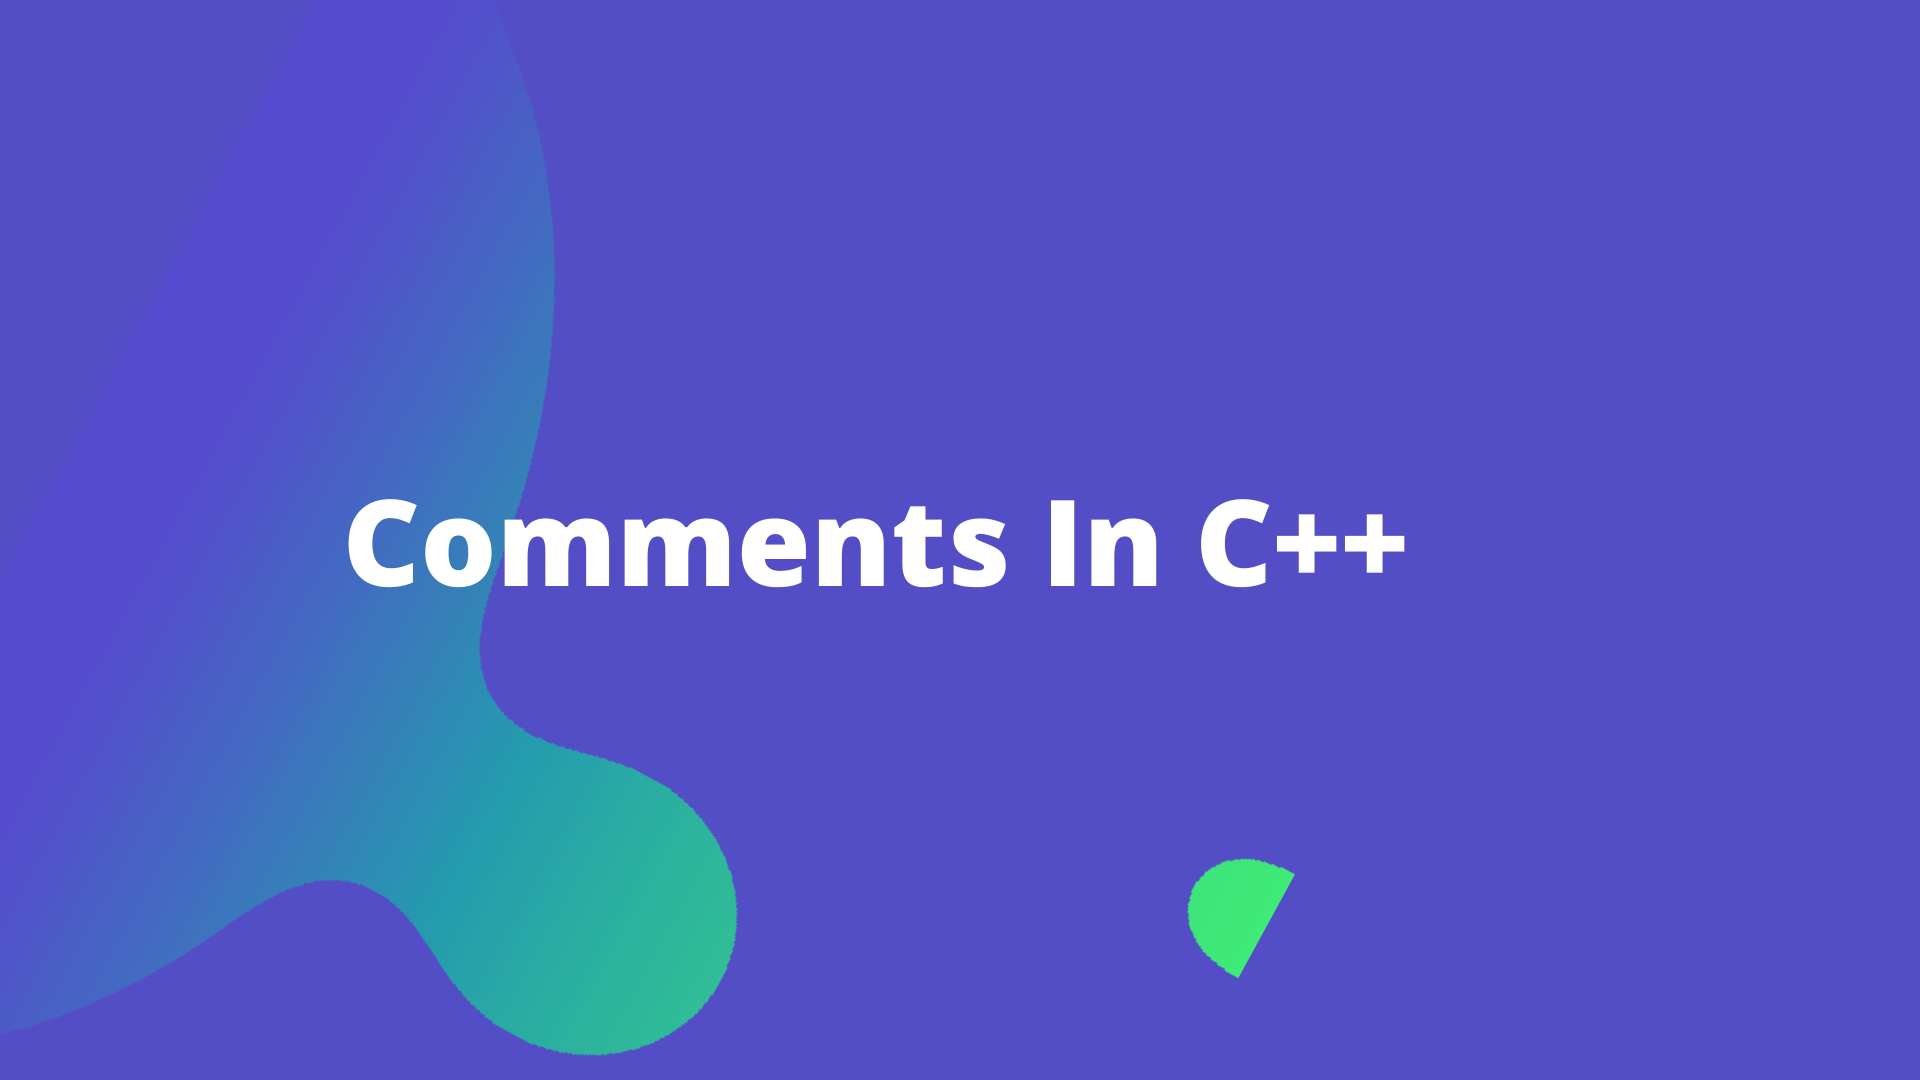 C++ Comments In Depth